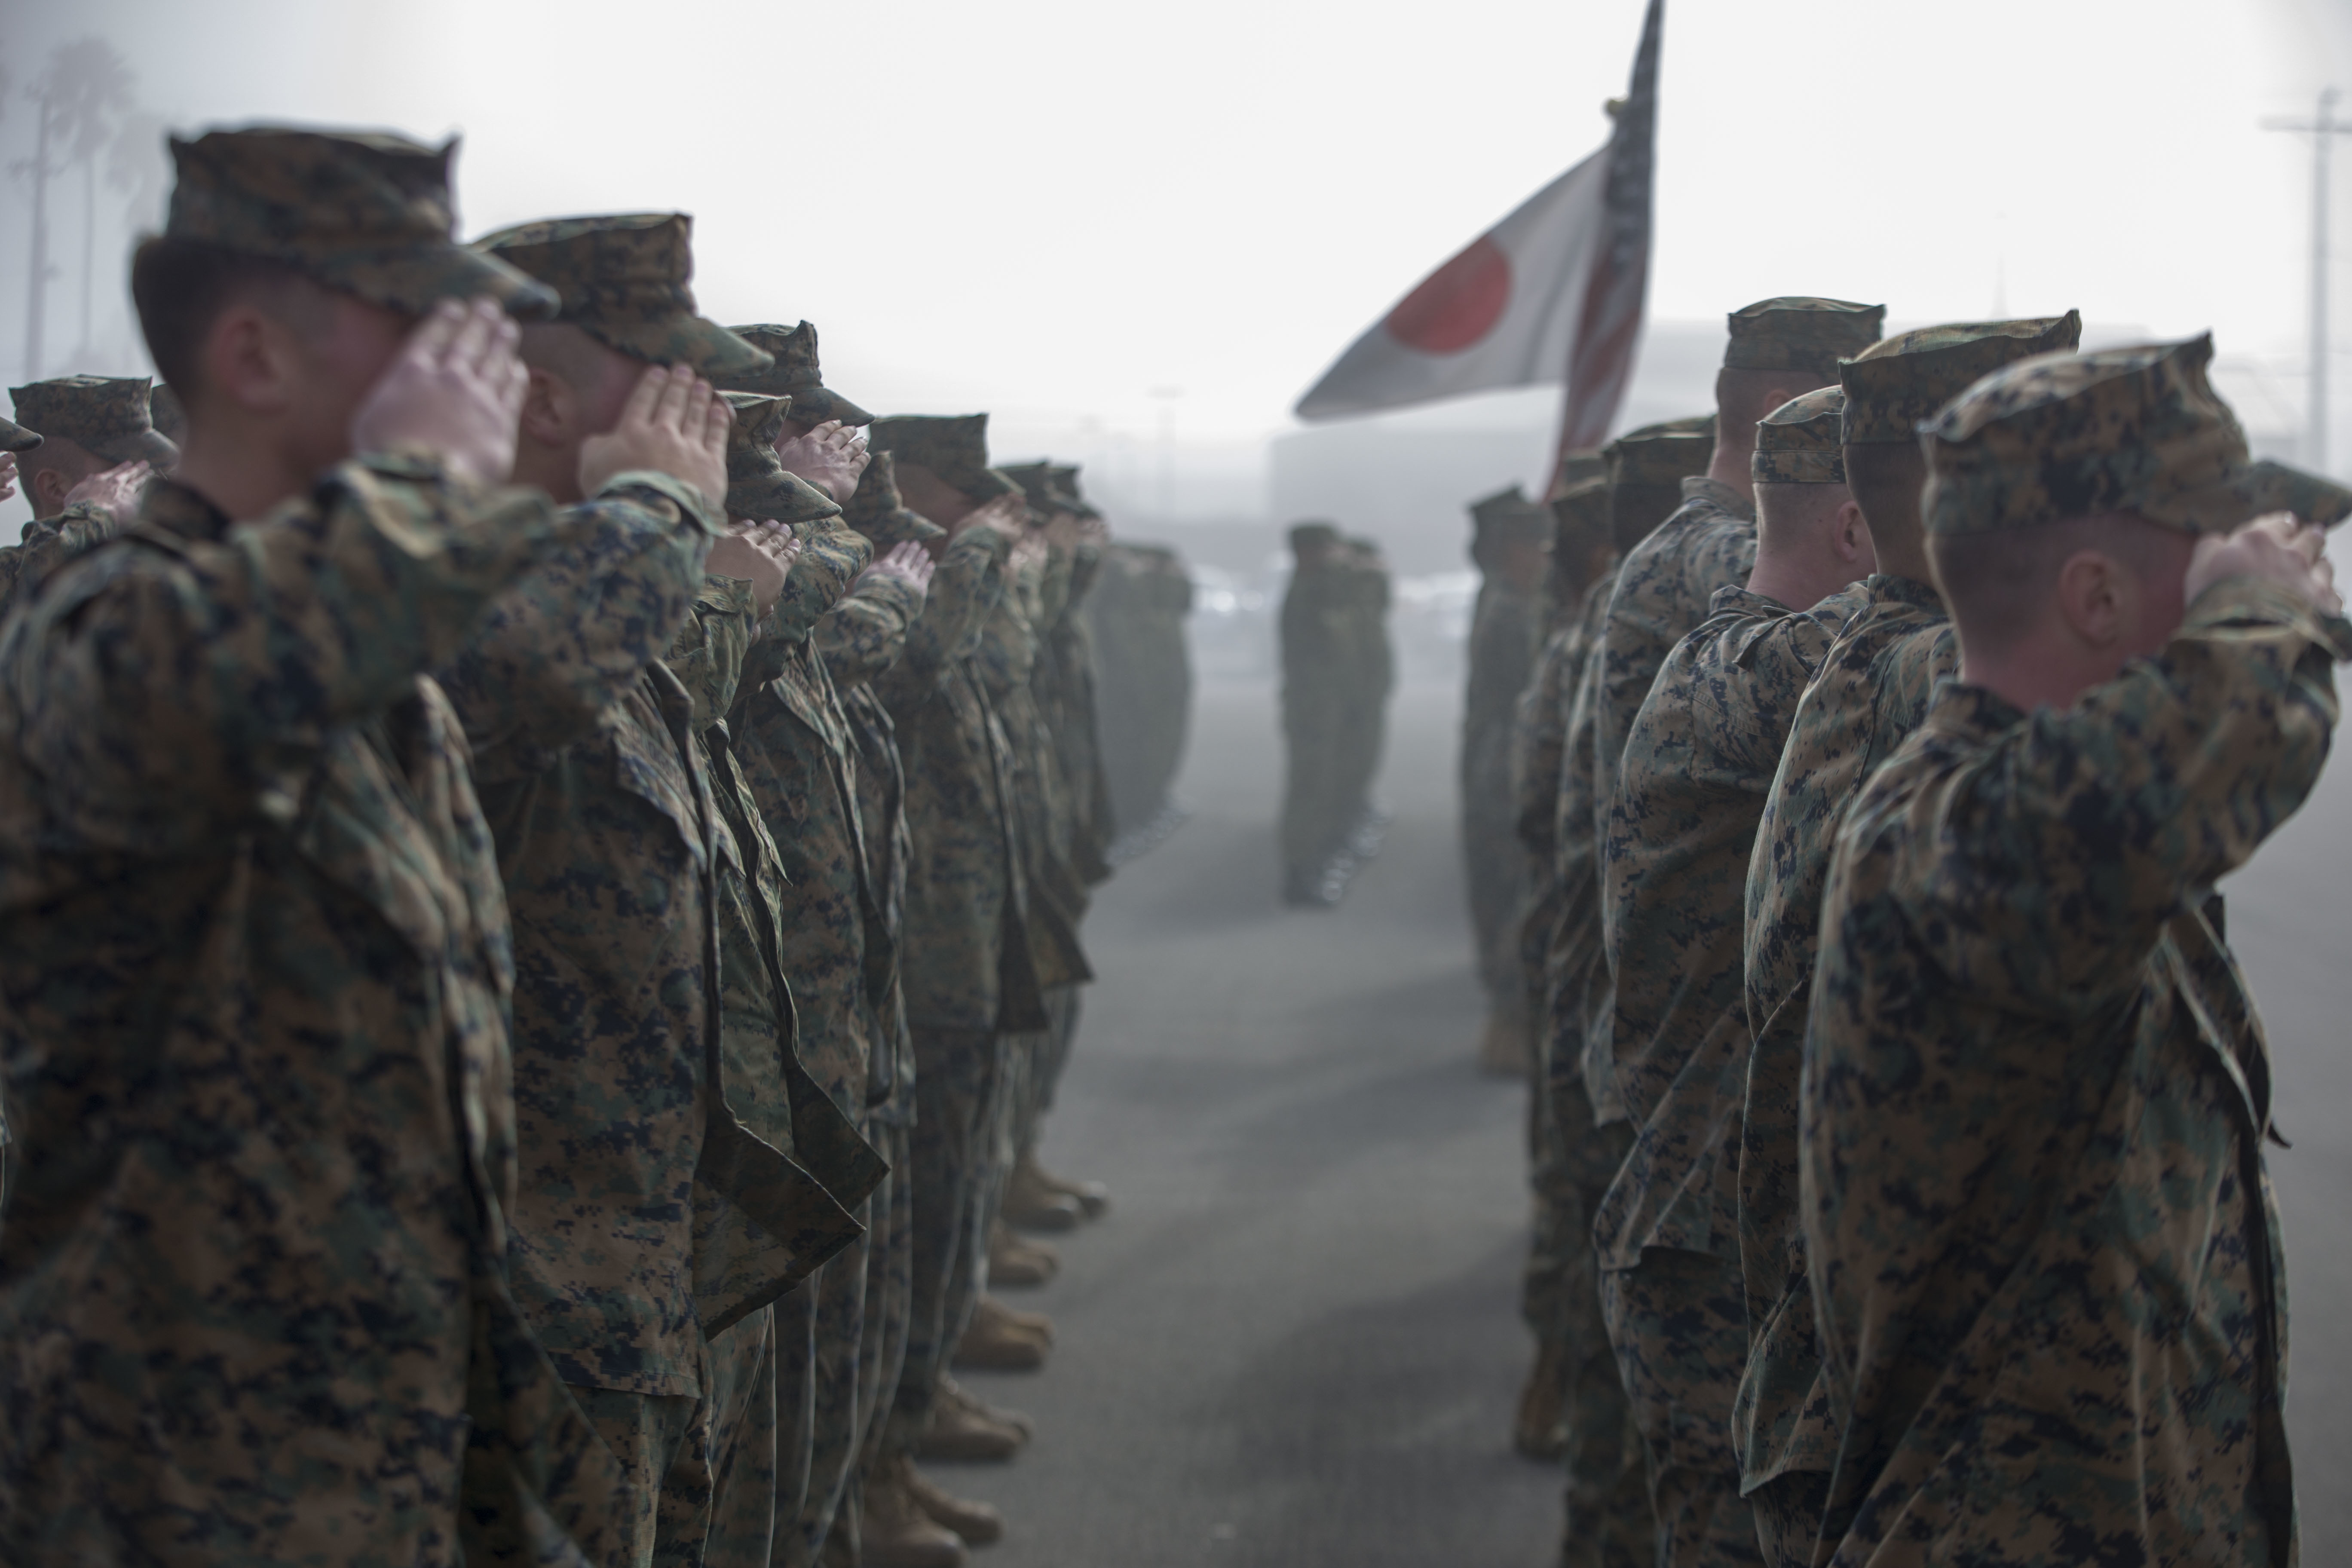 Iron Fist 2018 Ramps Up Training as Japan Readies 1st